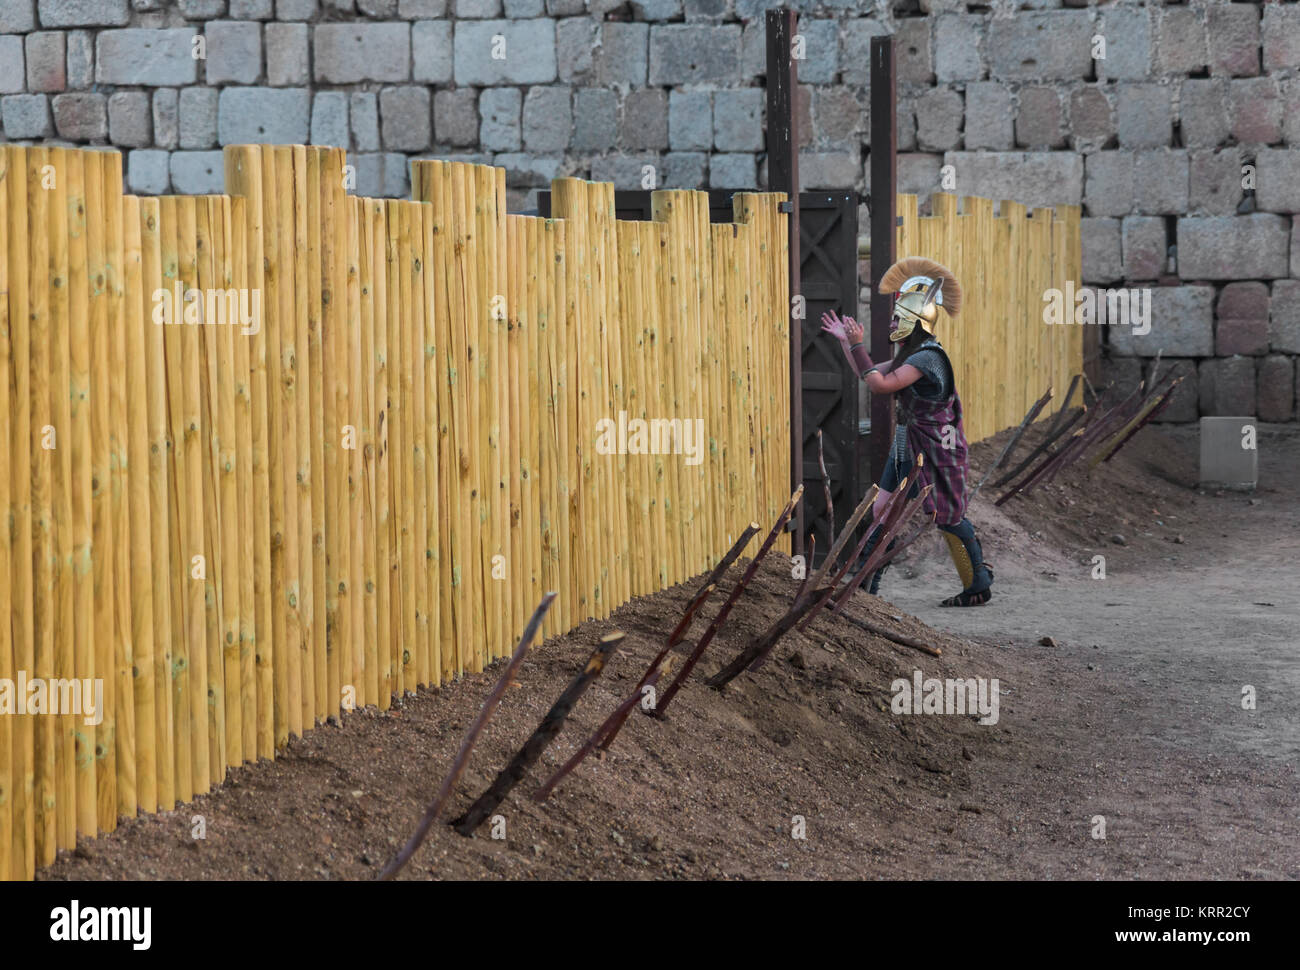 Mérida, Spain - June 19, 2015: A person dressed in the costume of ancient warrior in the first century, participates - Stock Image